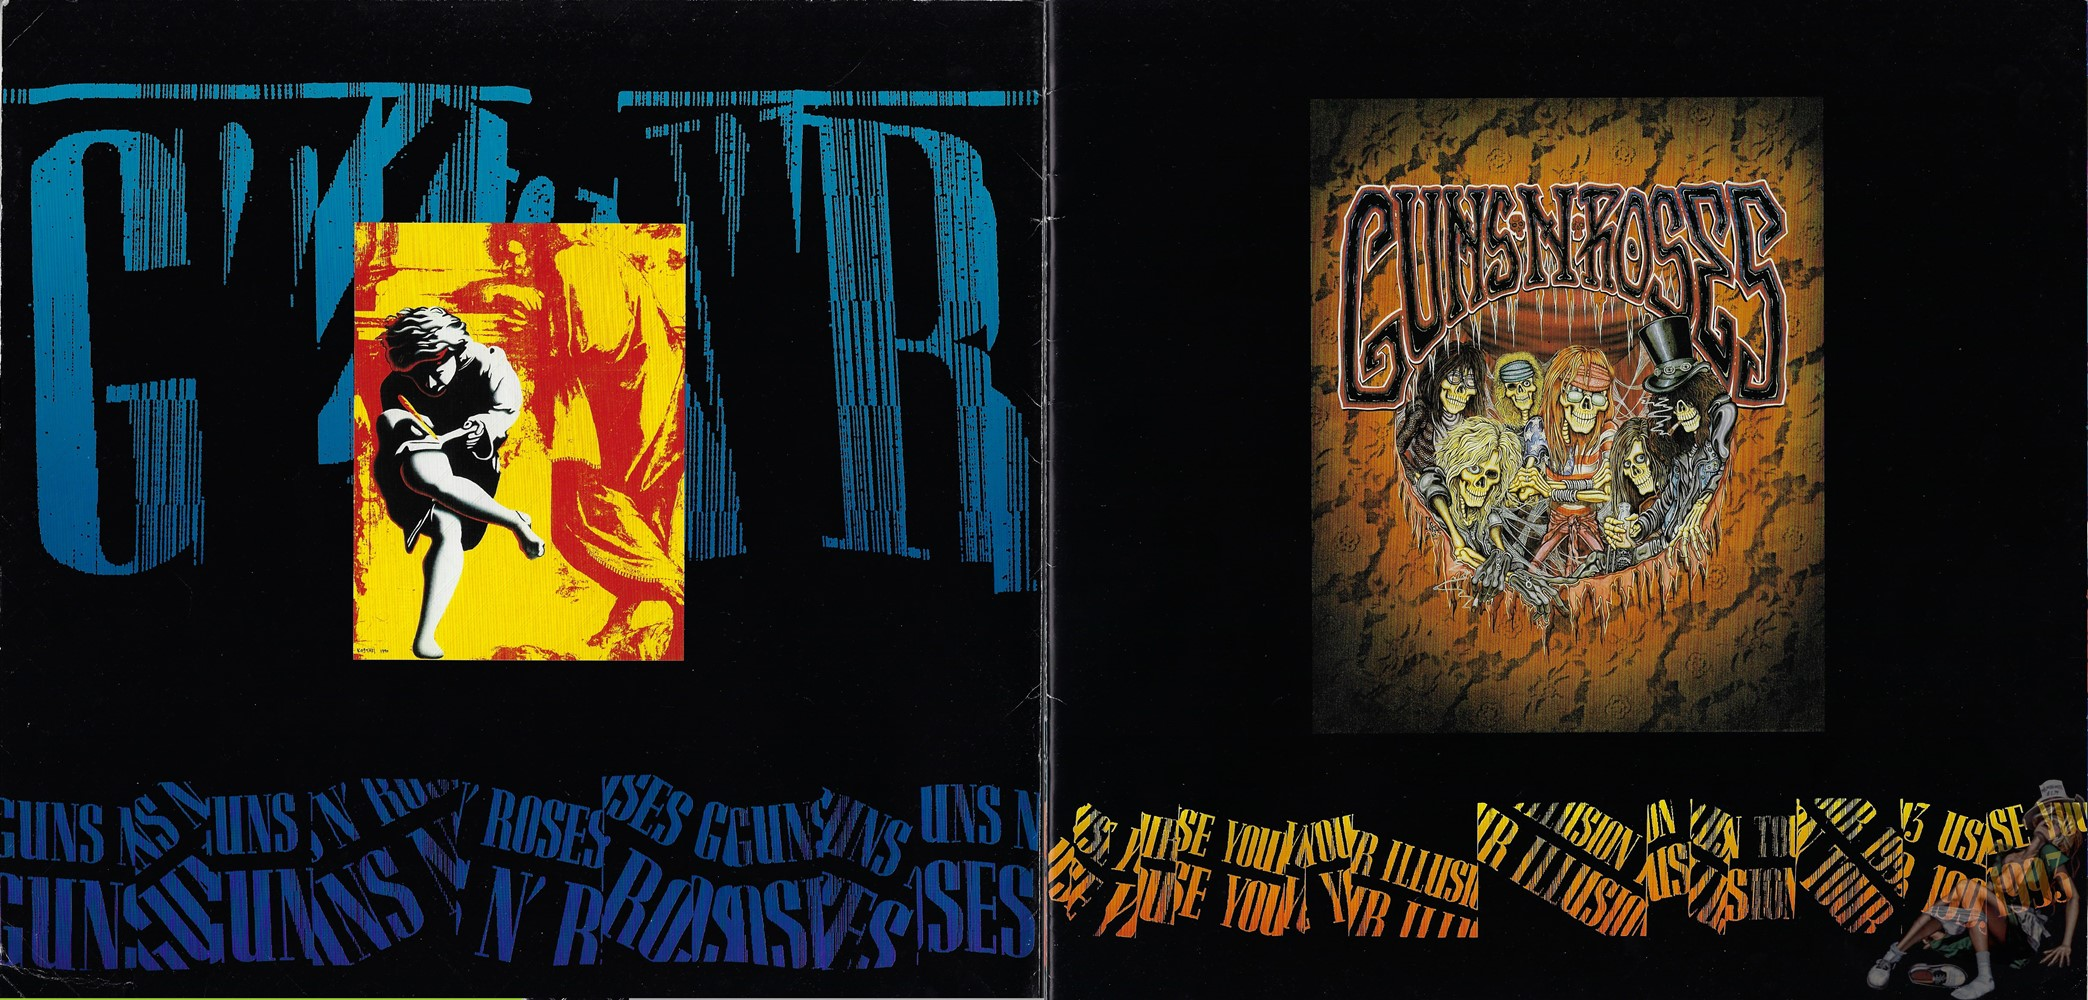 1993.MM.DD - Use Your Illusion Tour program C6Le3DnW_o